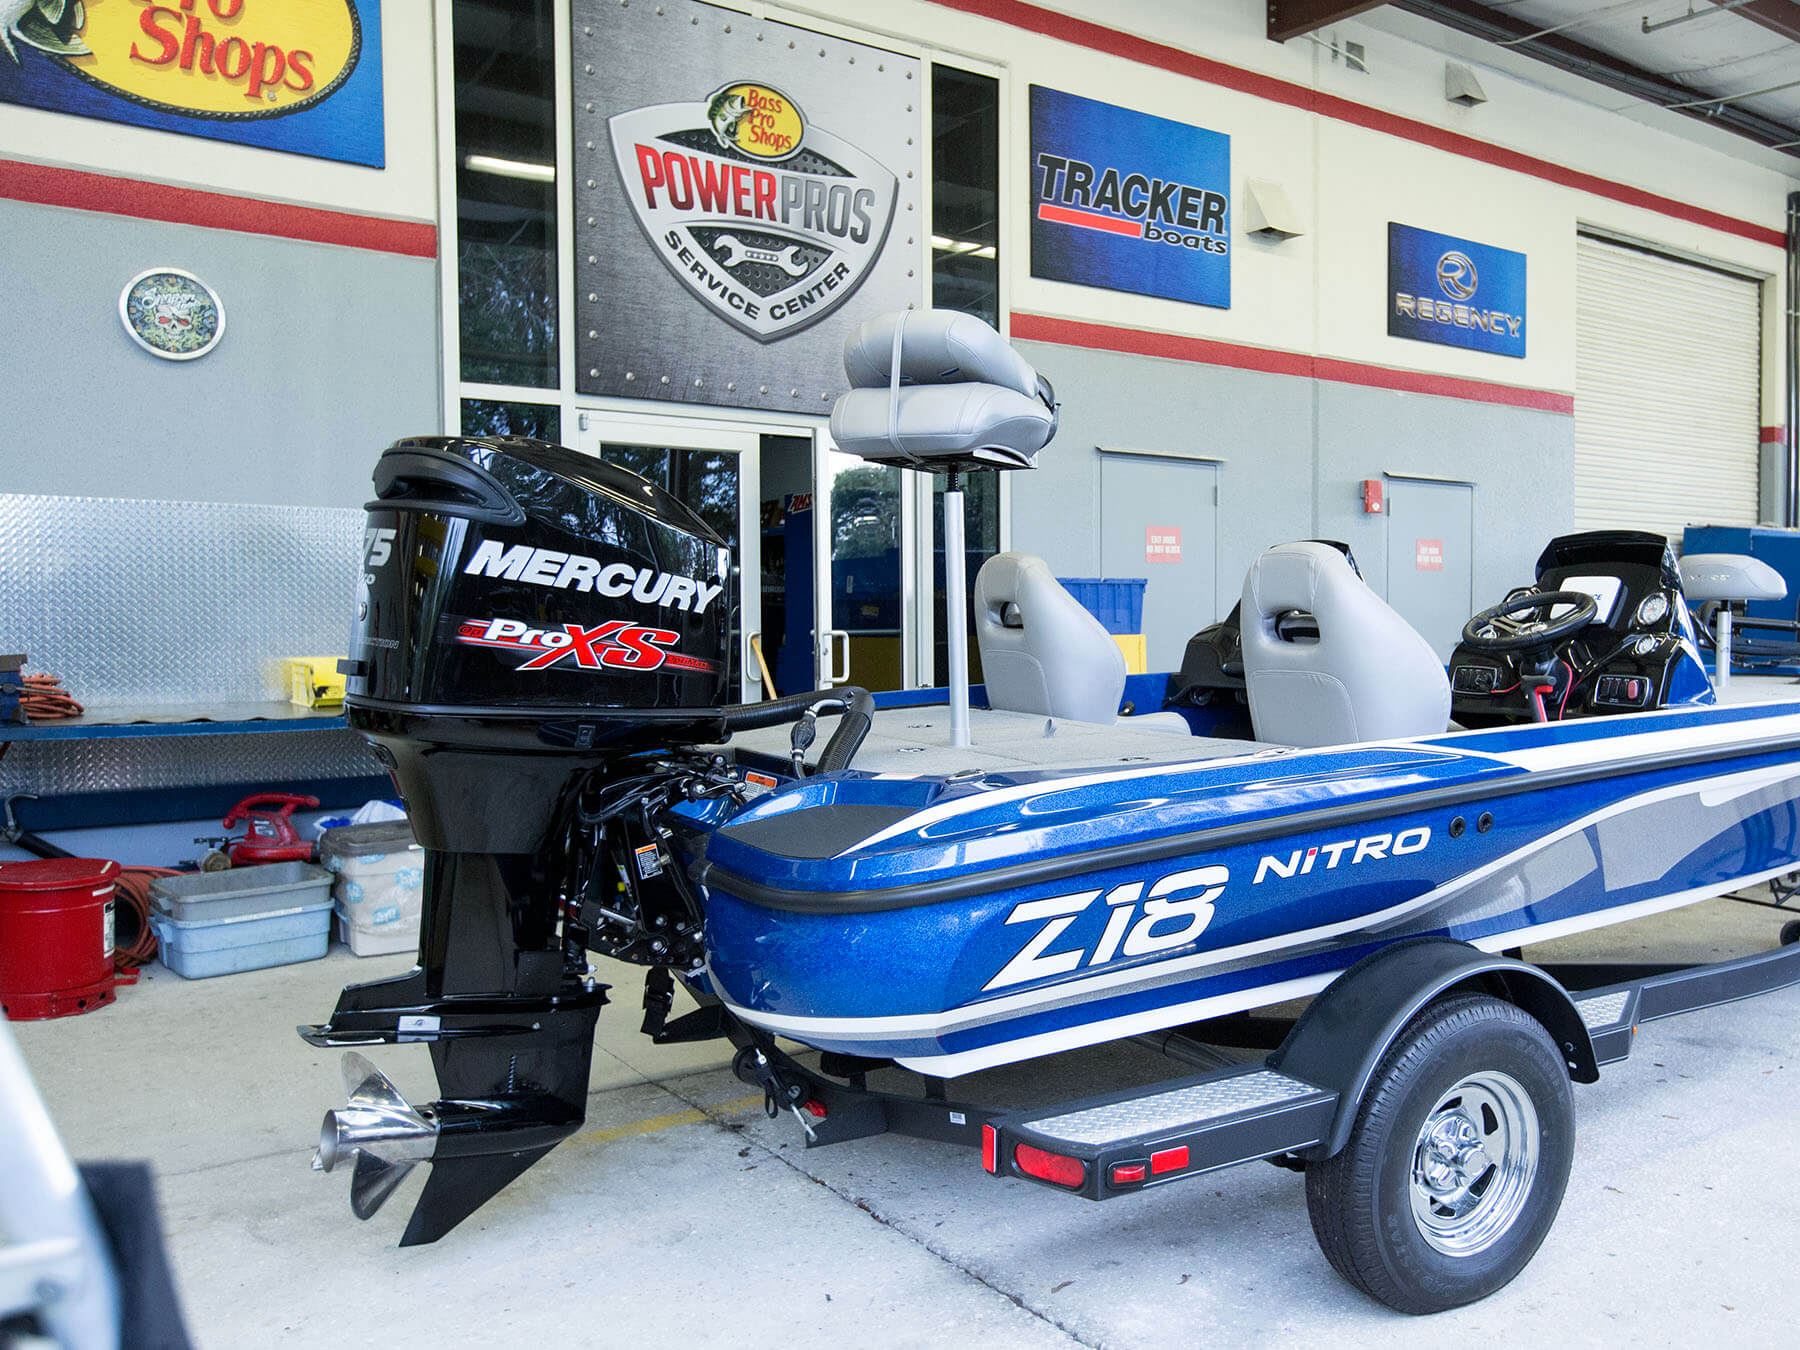 Blue z18 nitro boat with a mercury pro xs engine outside of the classroom